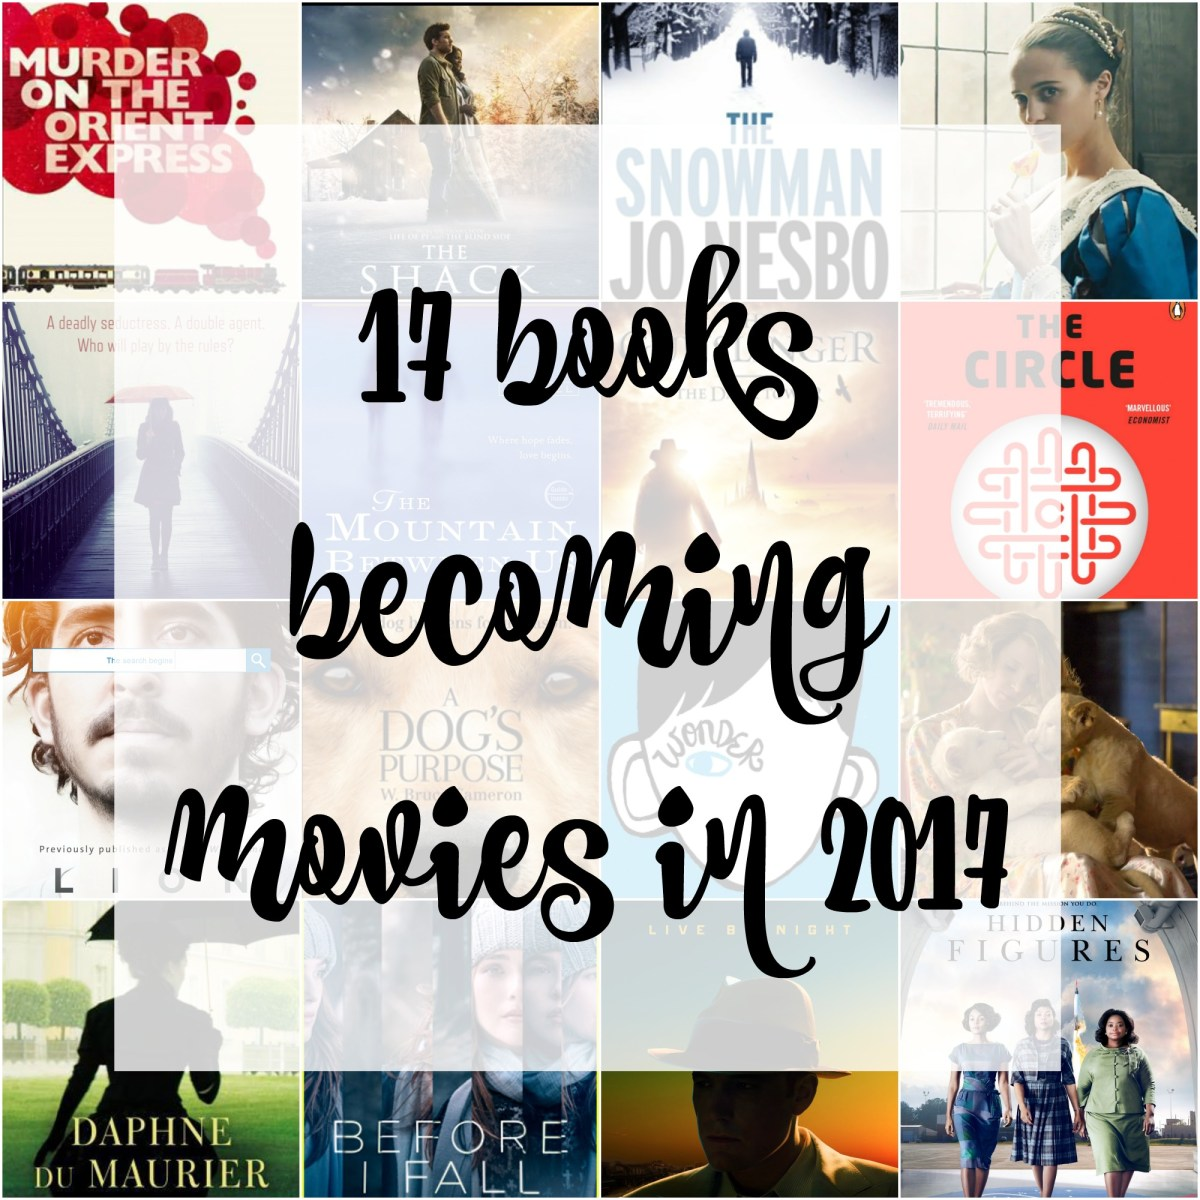 17 books becoming movies in 2017